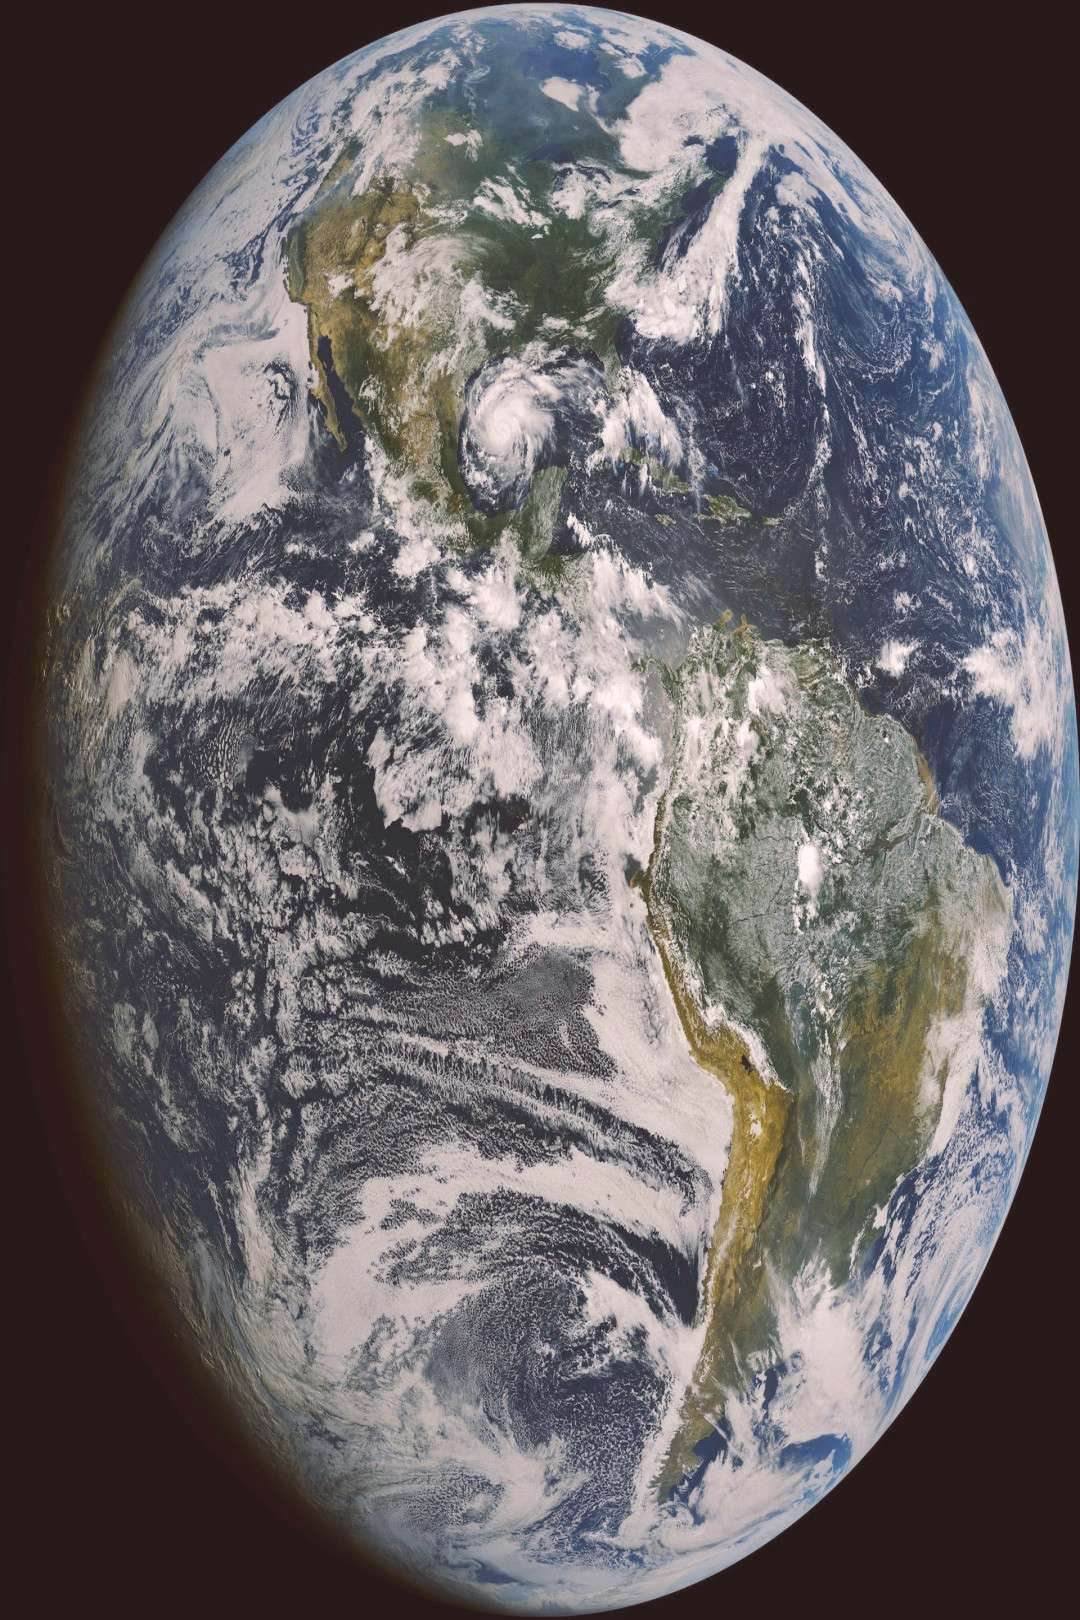 Planet Earth. Of all the planets in our solar system, this is the only one known to harbour life.  